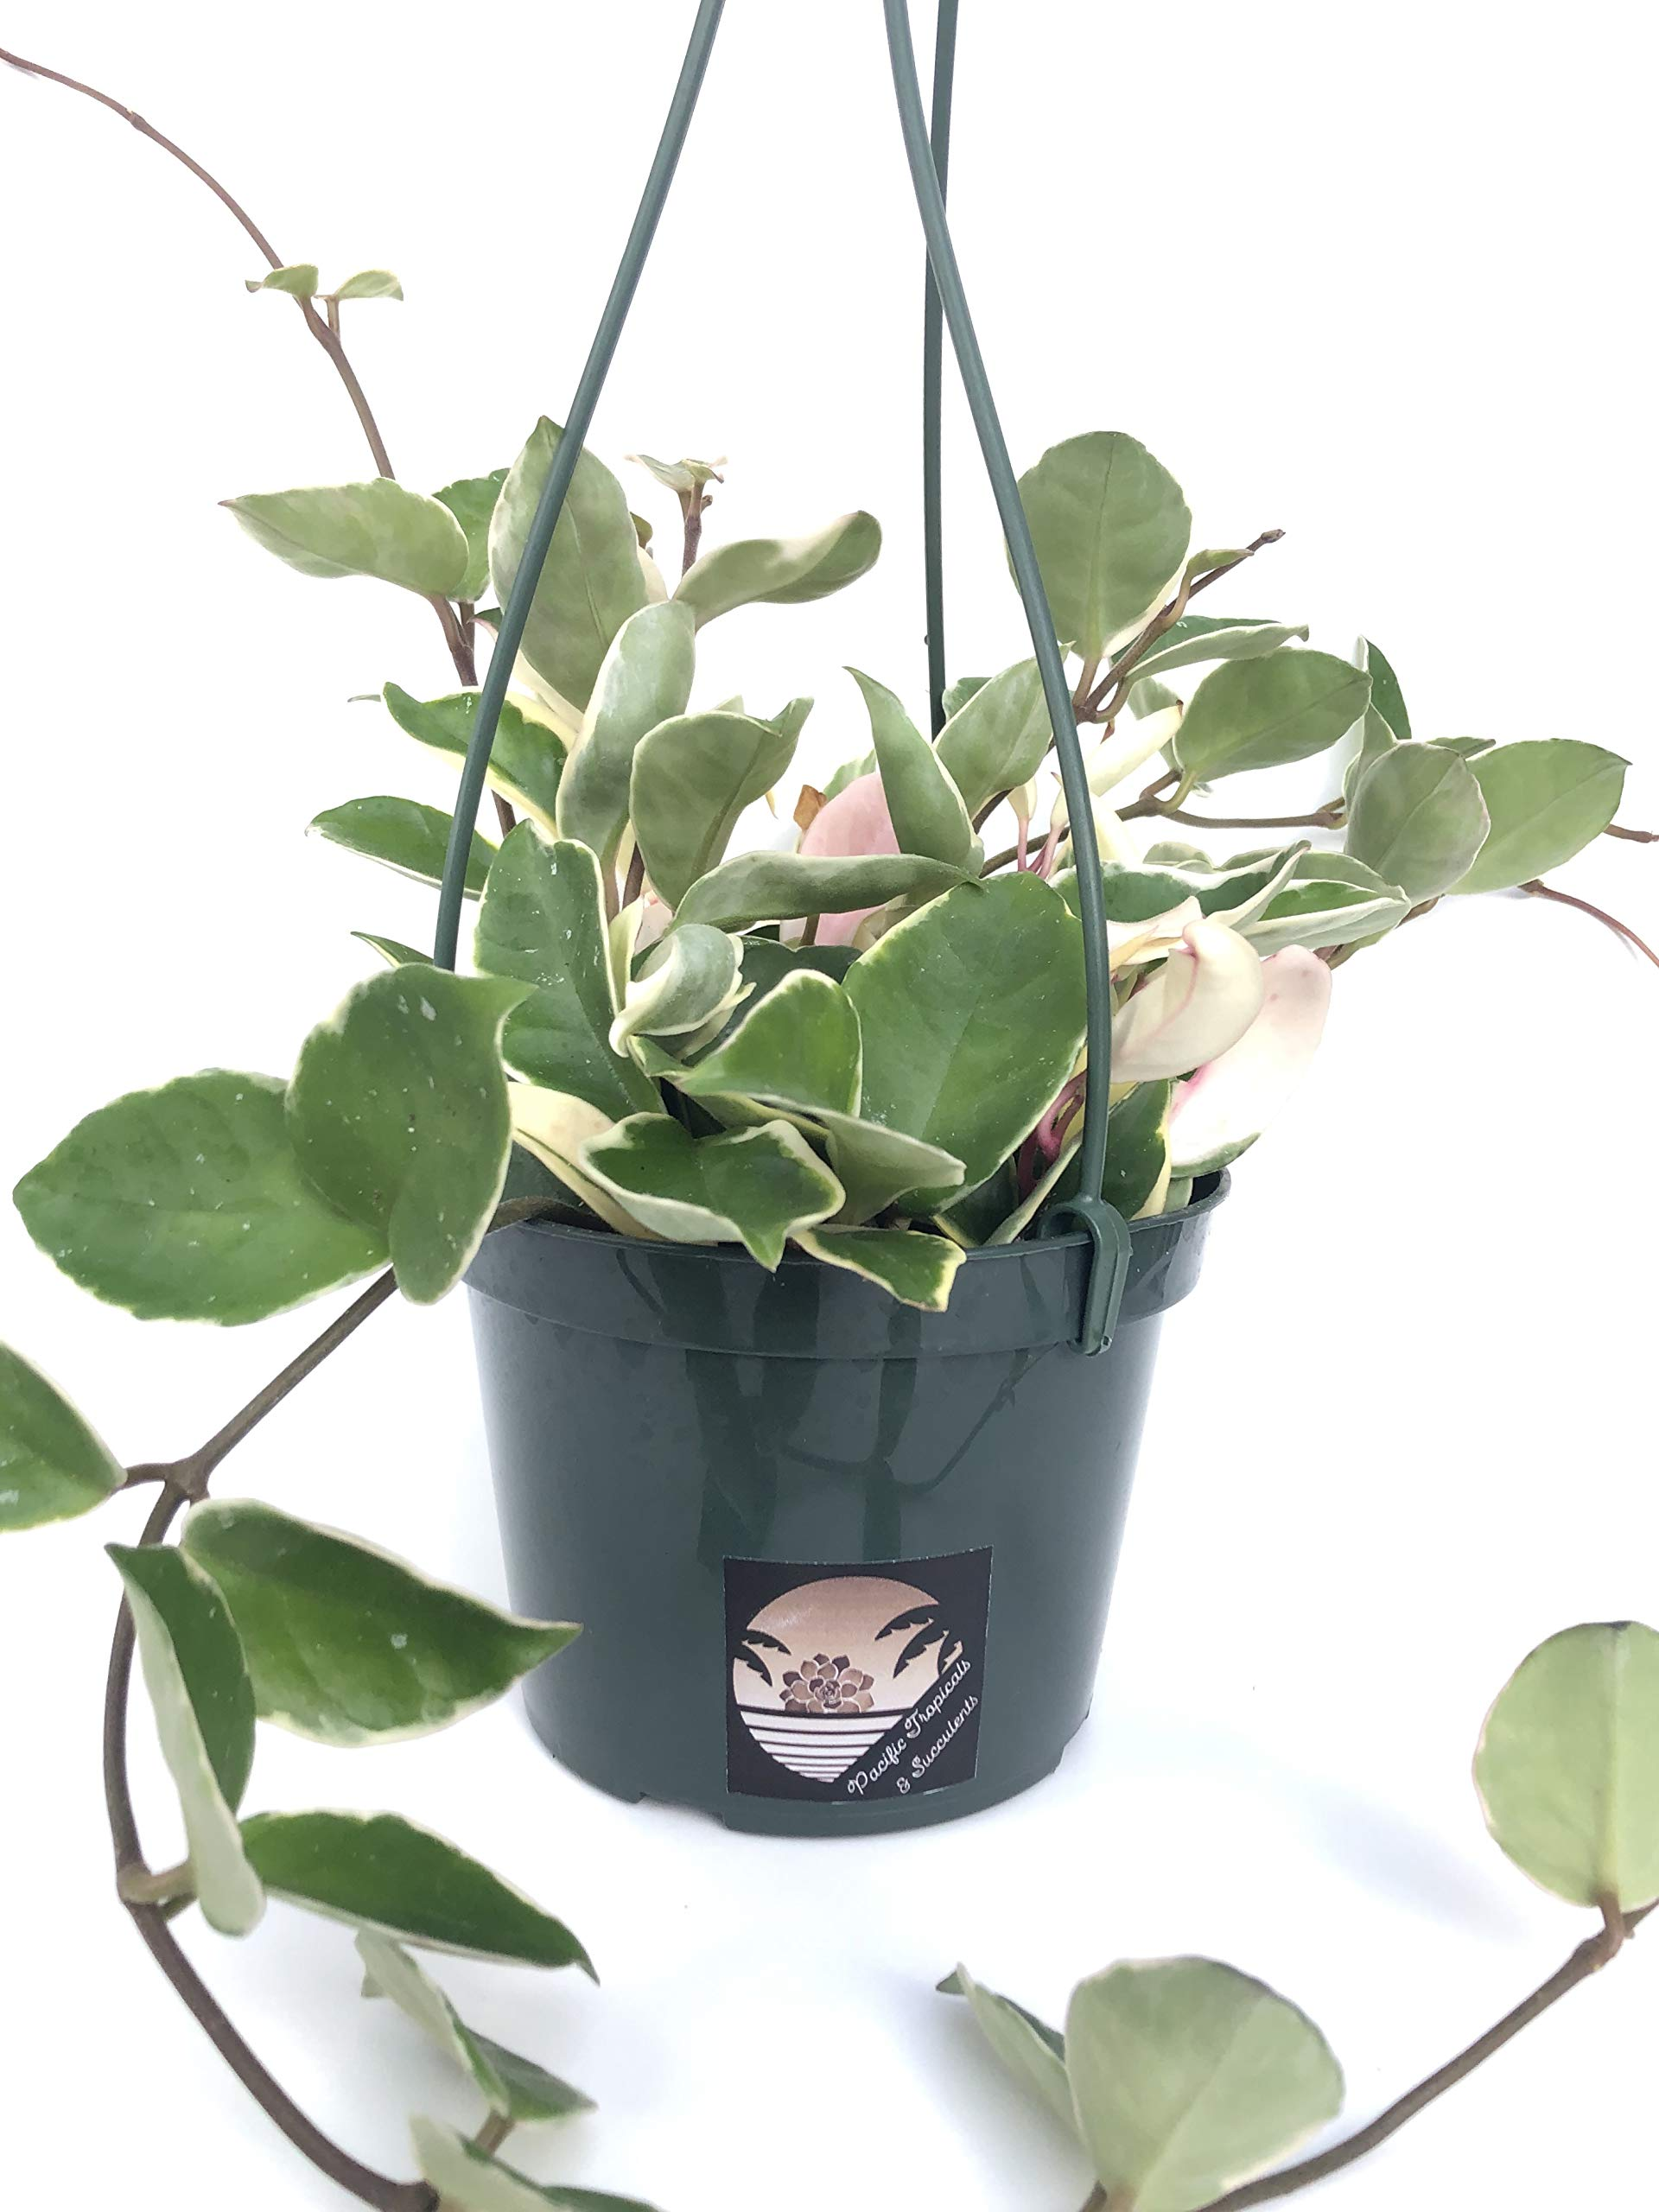 Pacific Tropicals &Succulents -Hoya Carnosa Tricolor -Live Indoor Plant-Ships in 6 inch Grow Pot-Homegrown